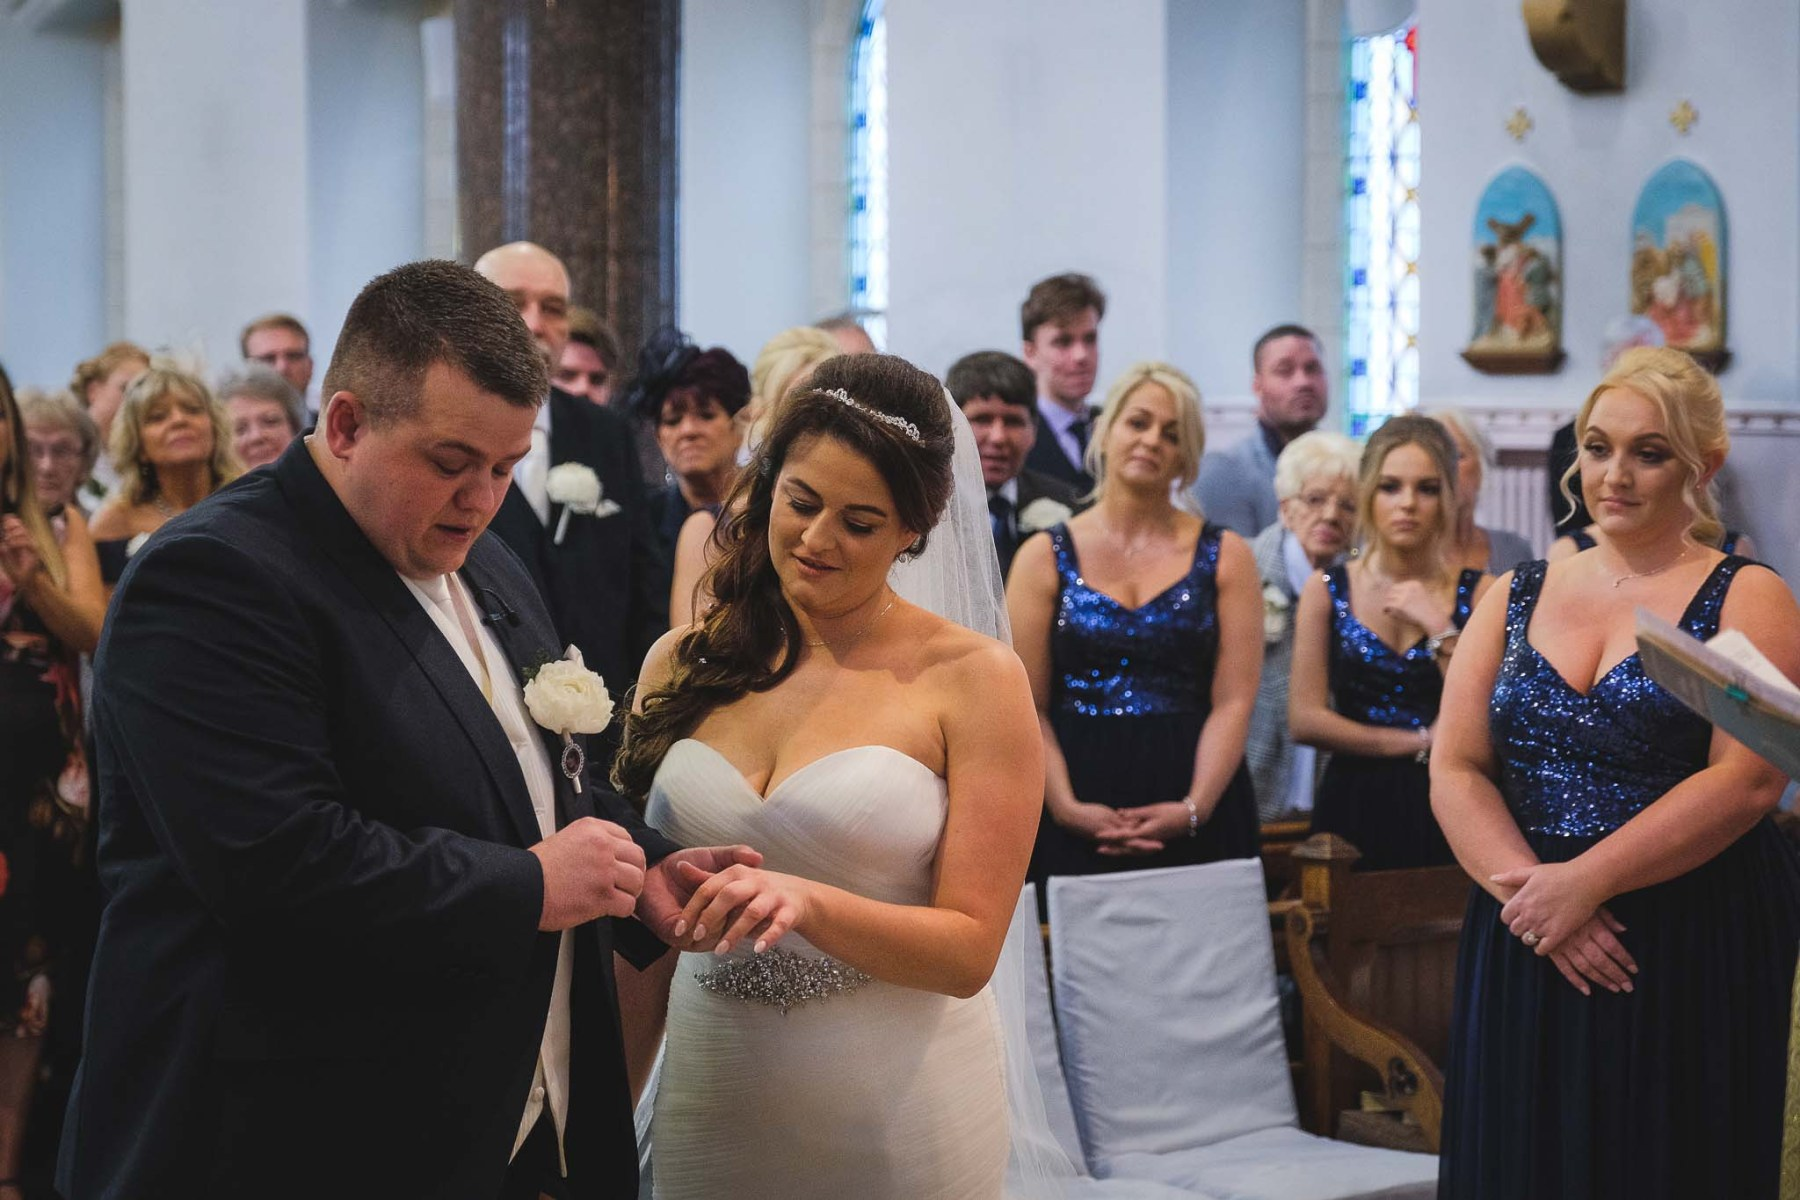 Liverpool wedding at The Park hotel